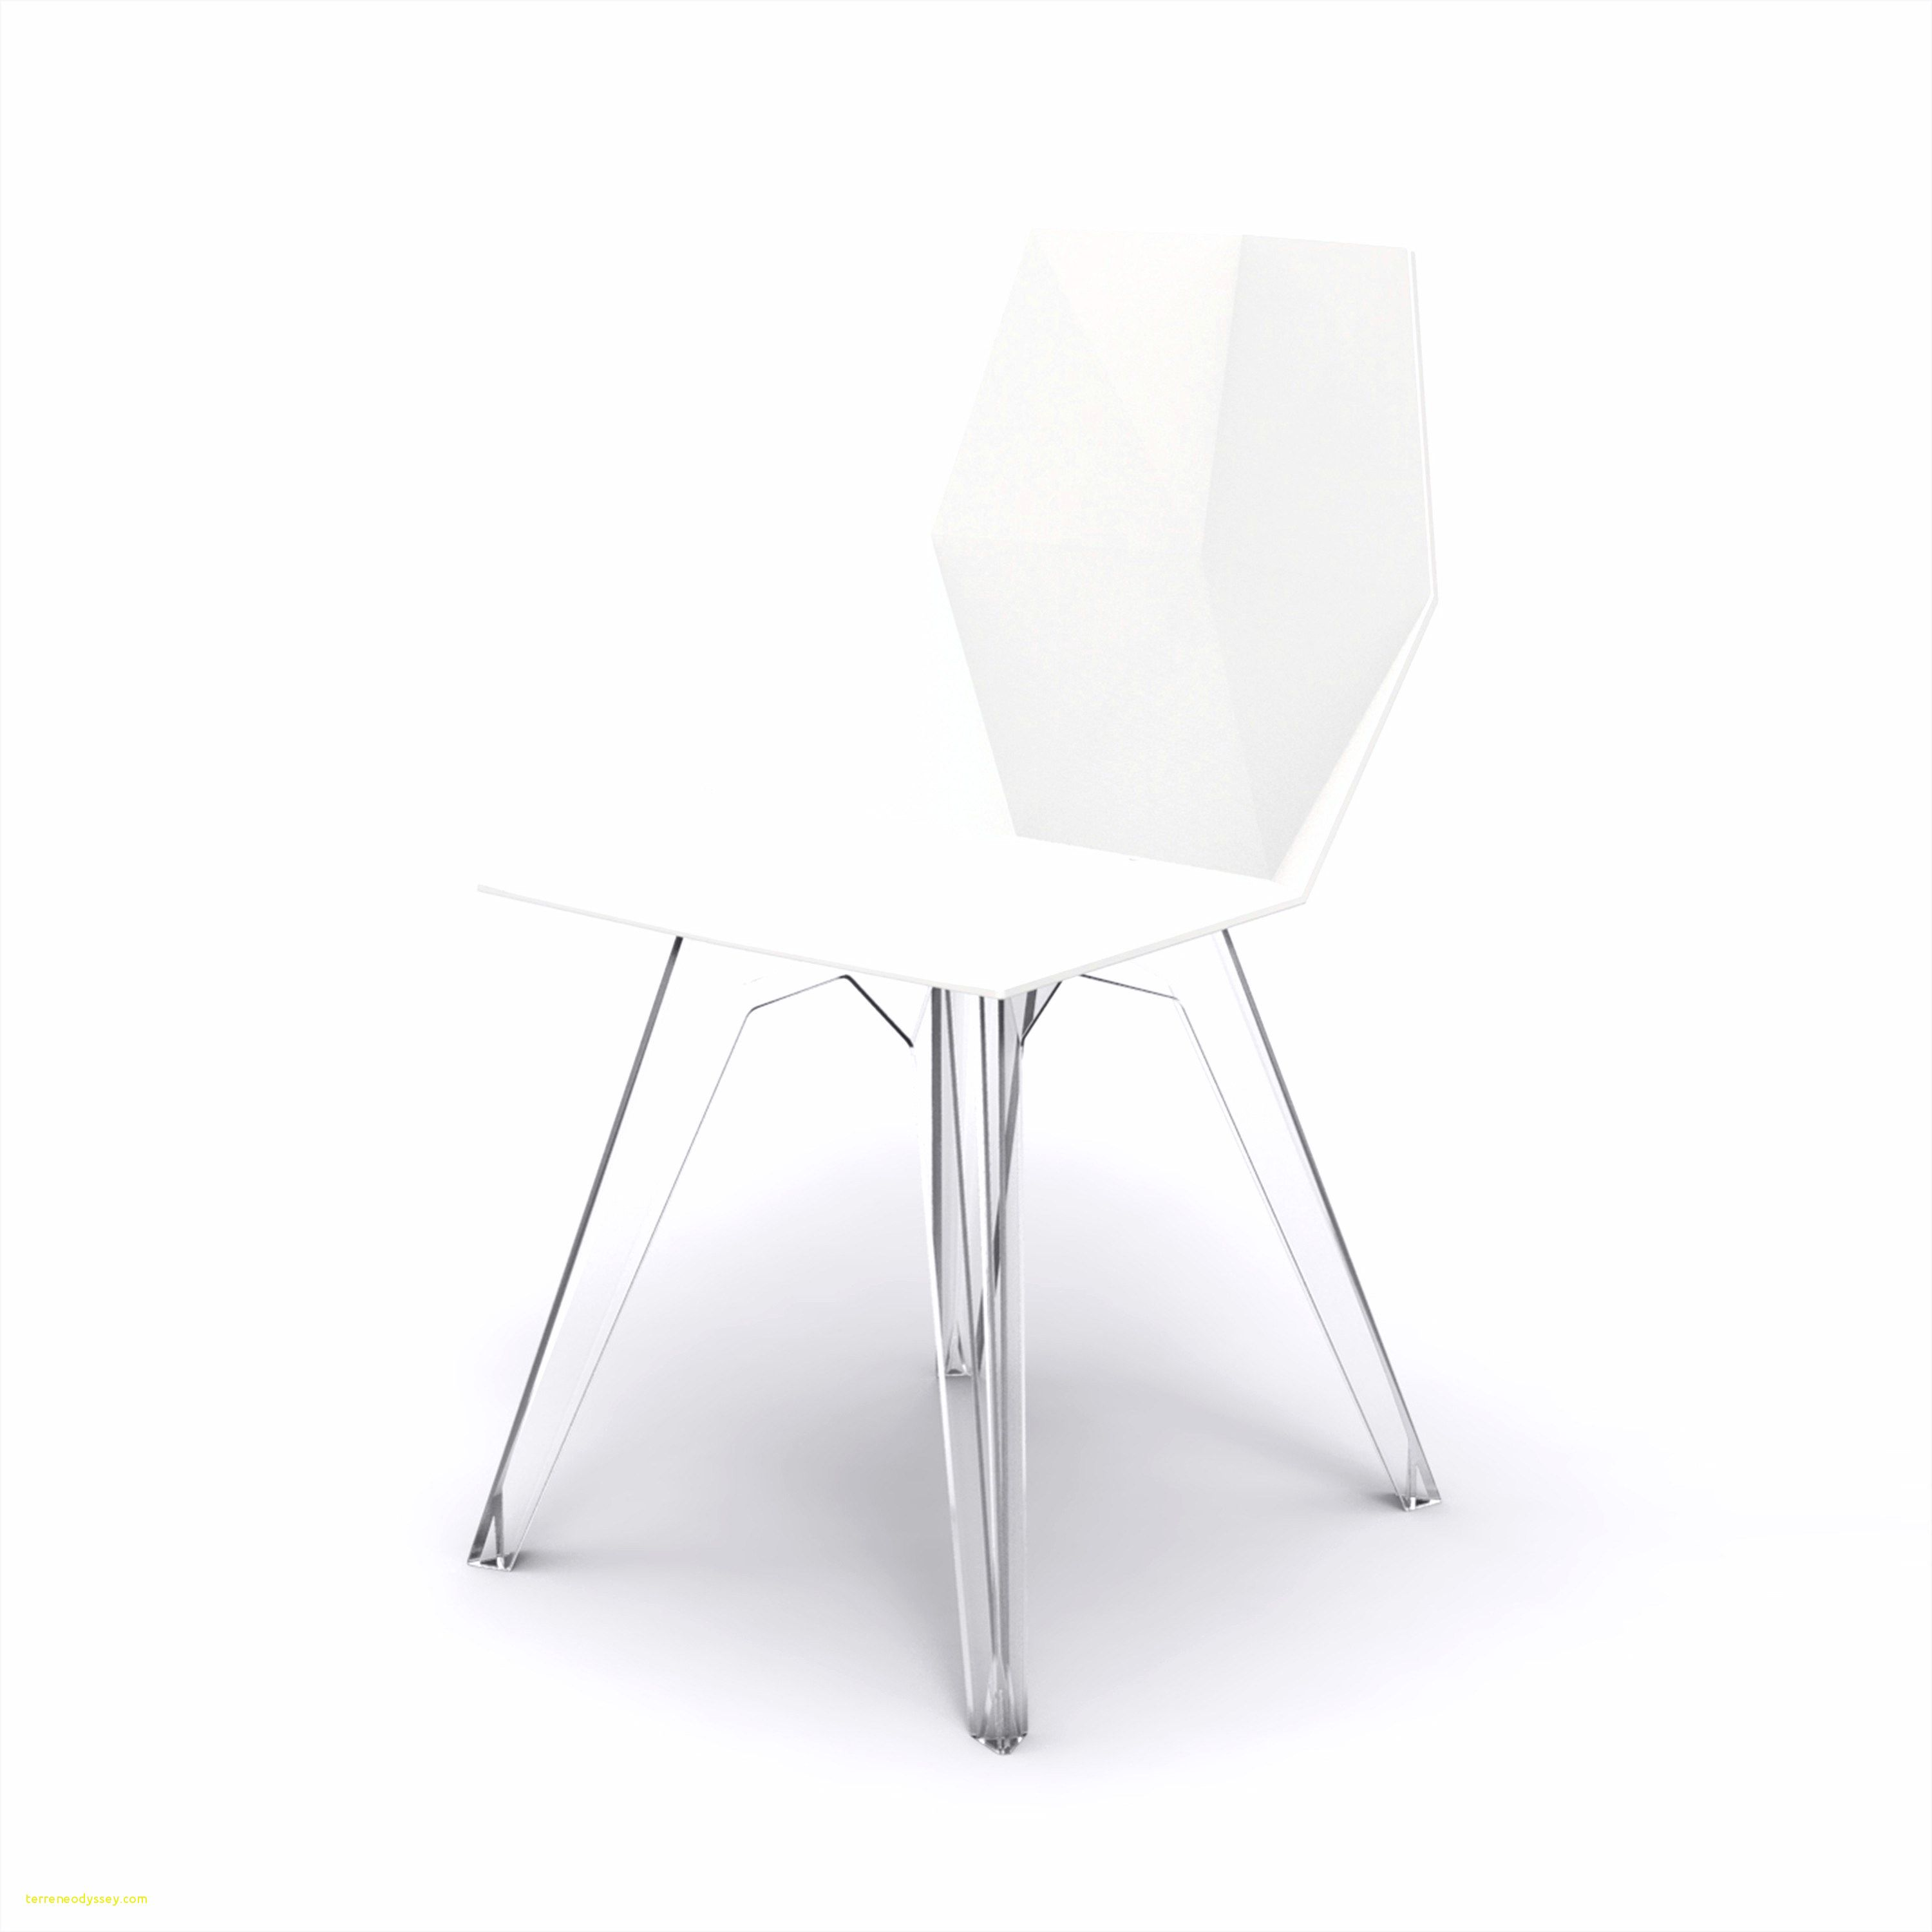 55 Cuisine Plan De Travail Bois Massif Check More At Https Iqkltx Info 77 Cuisine Plan De Travail Bois Massif Chair Garden Table And Chairs Furniture